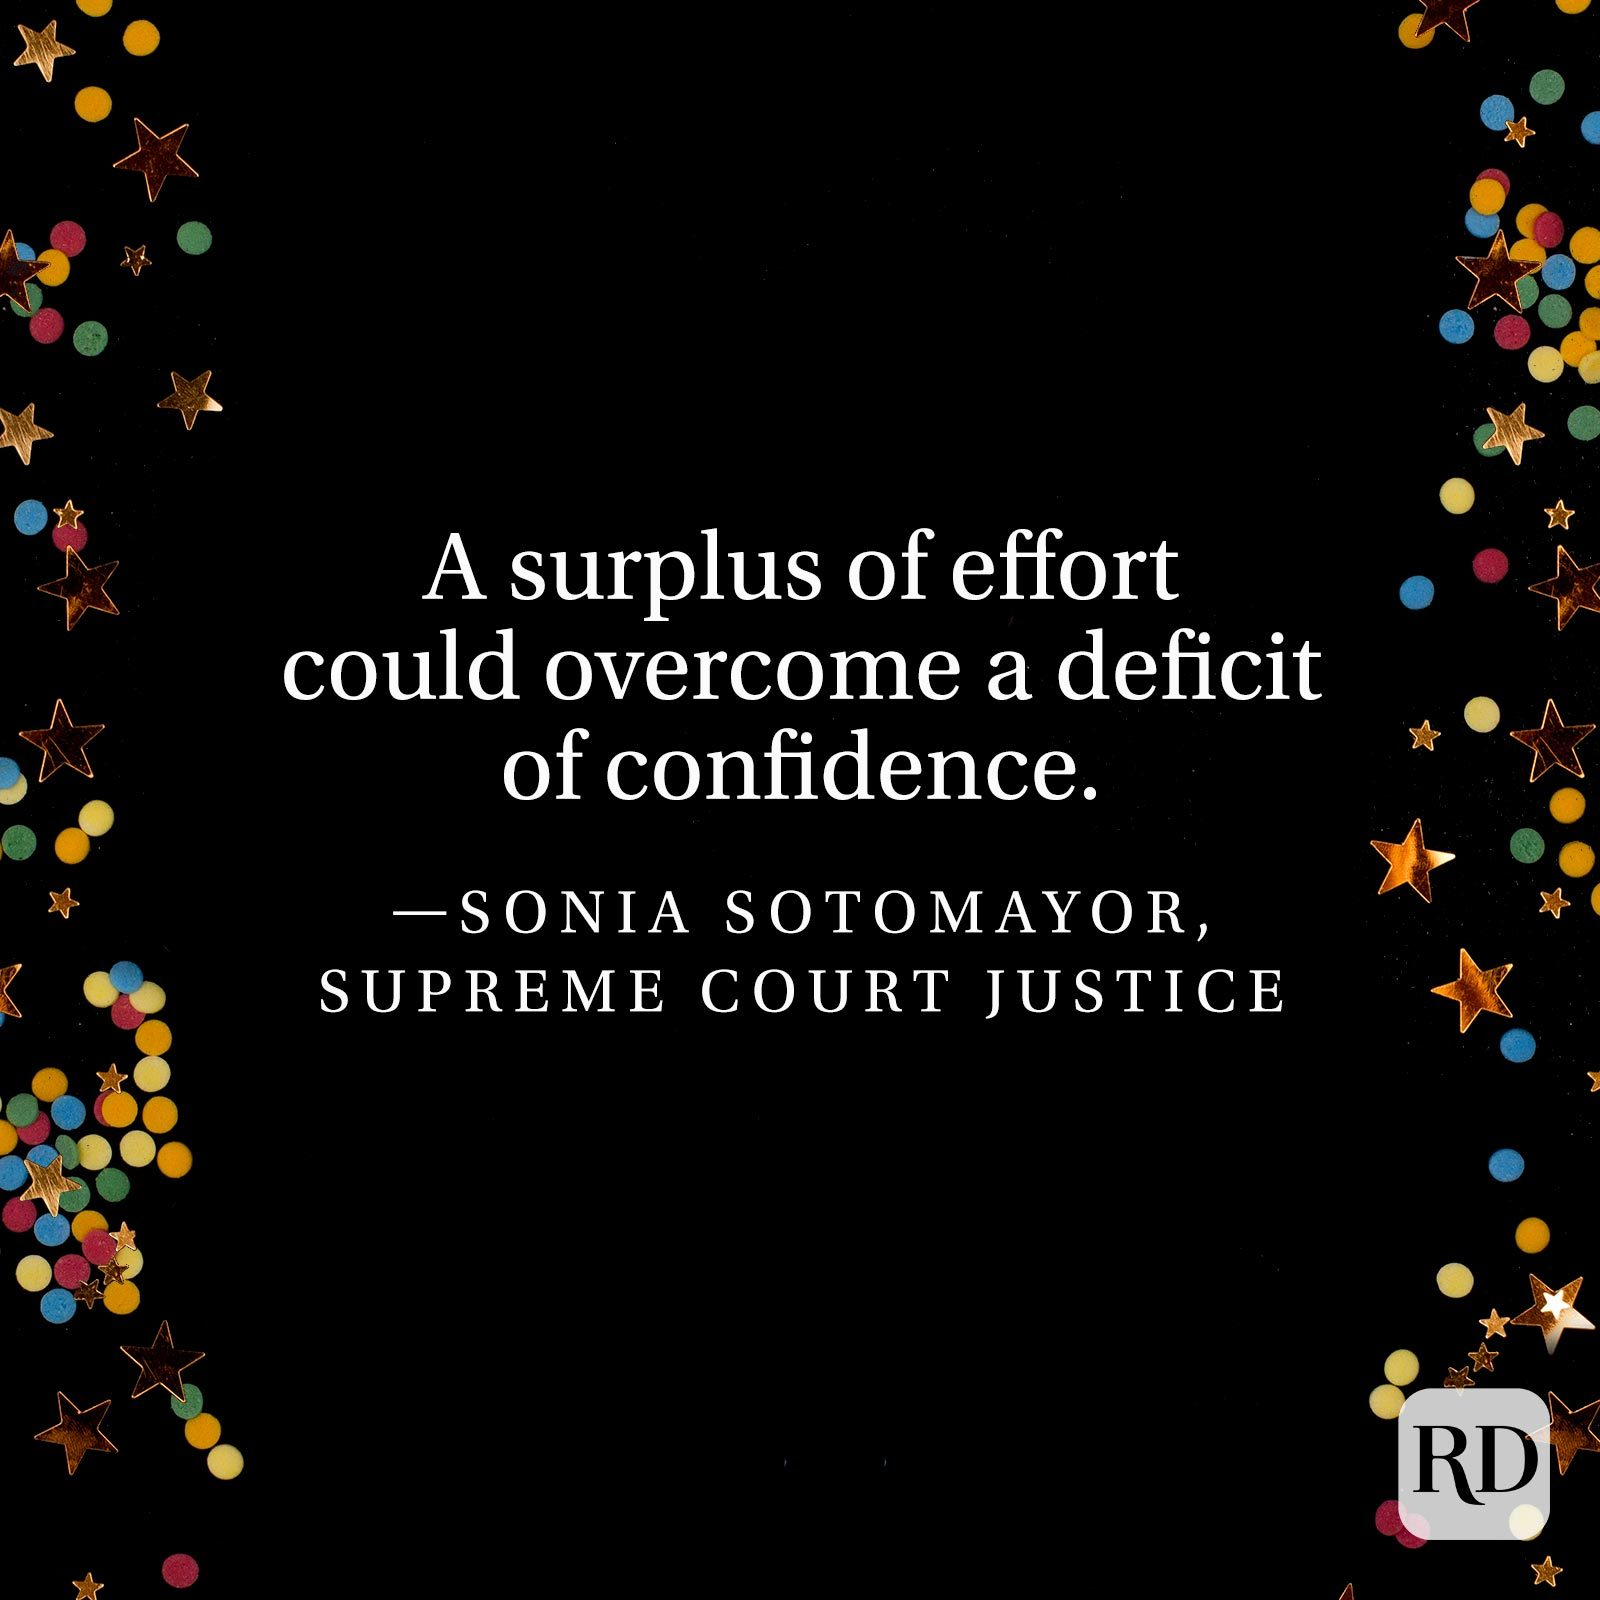 """A surplus of effort could overcome a deficit of confidence."" —Sonia Sotomayor, Supreme Court Justice"